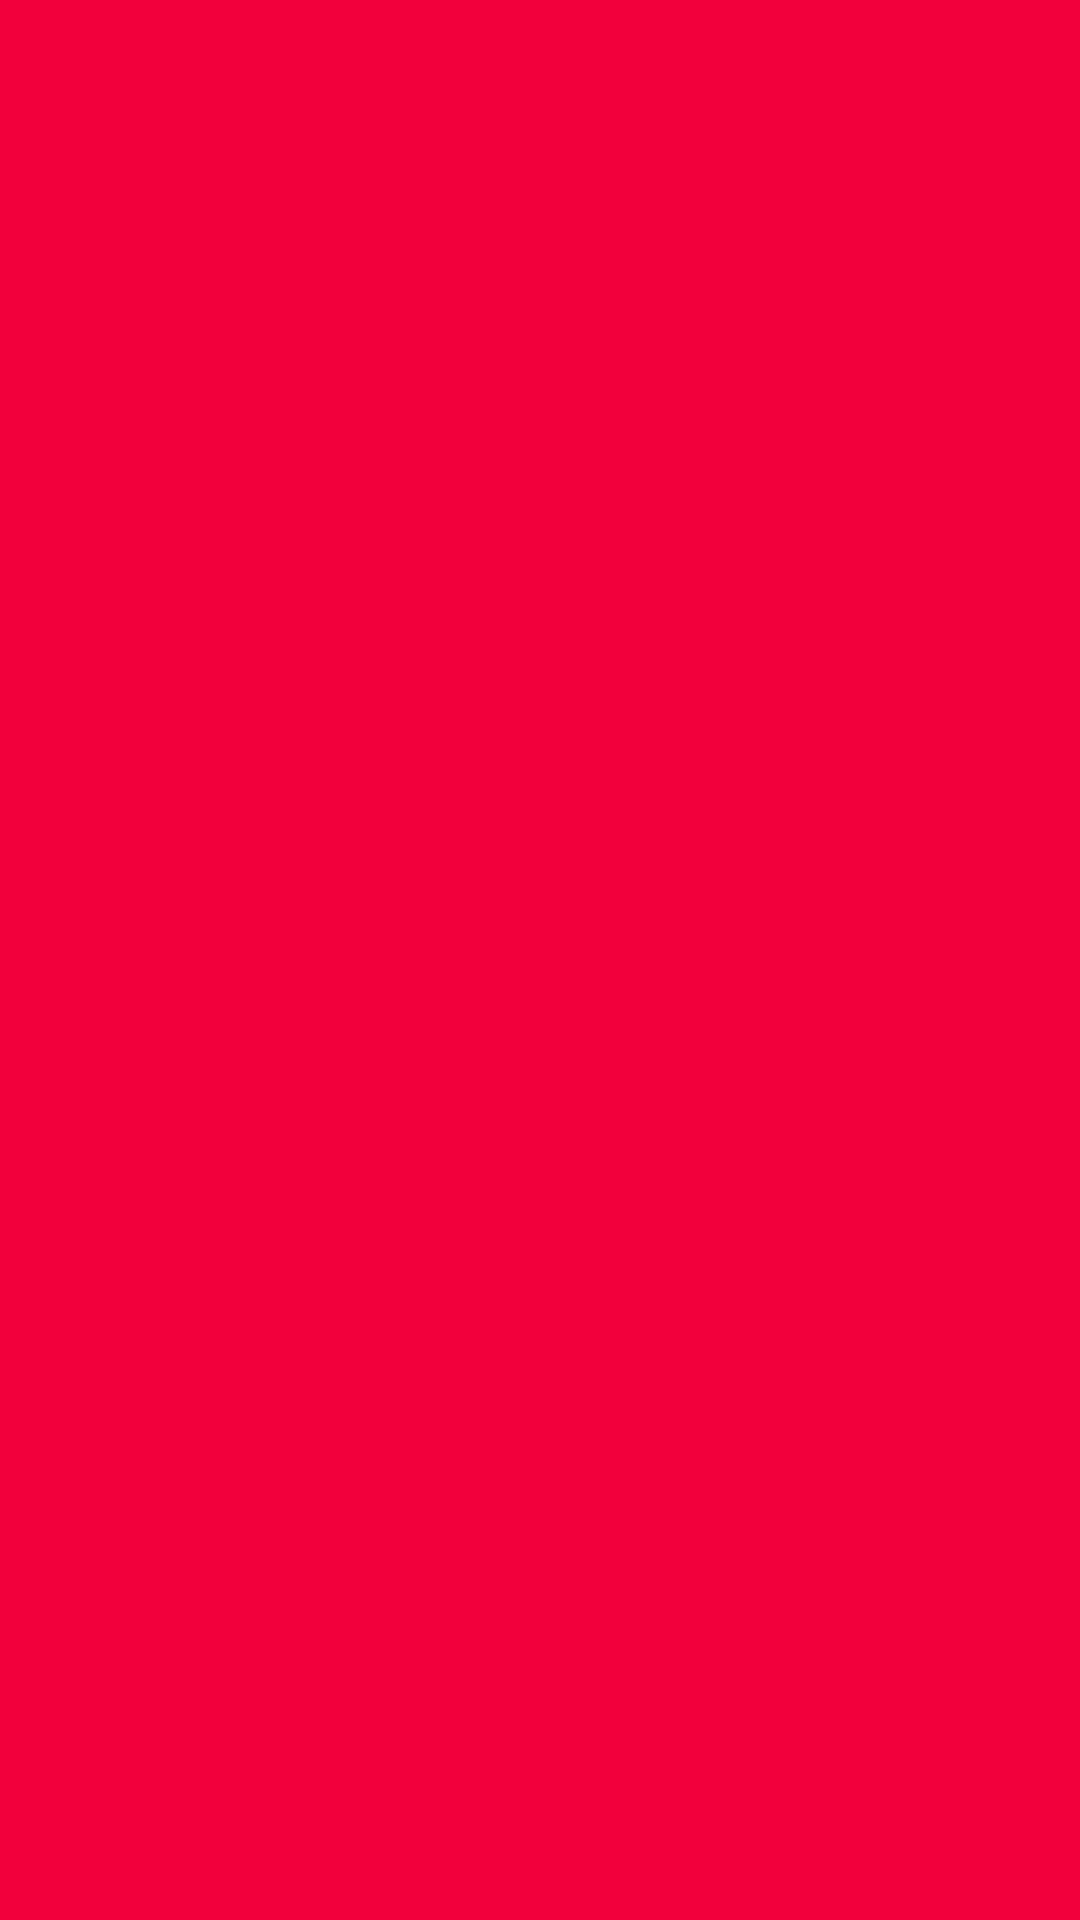 1080x1920 Red Munsell Solid Color Background